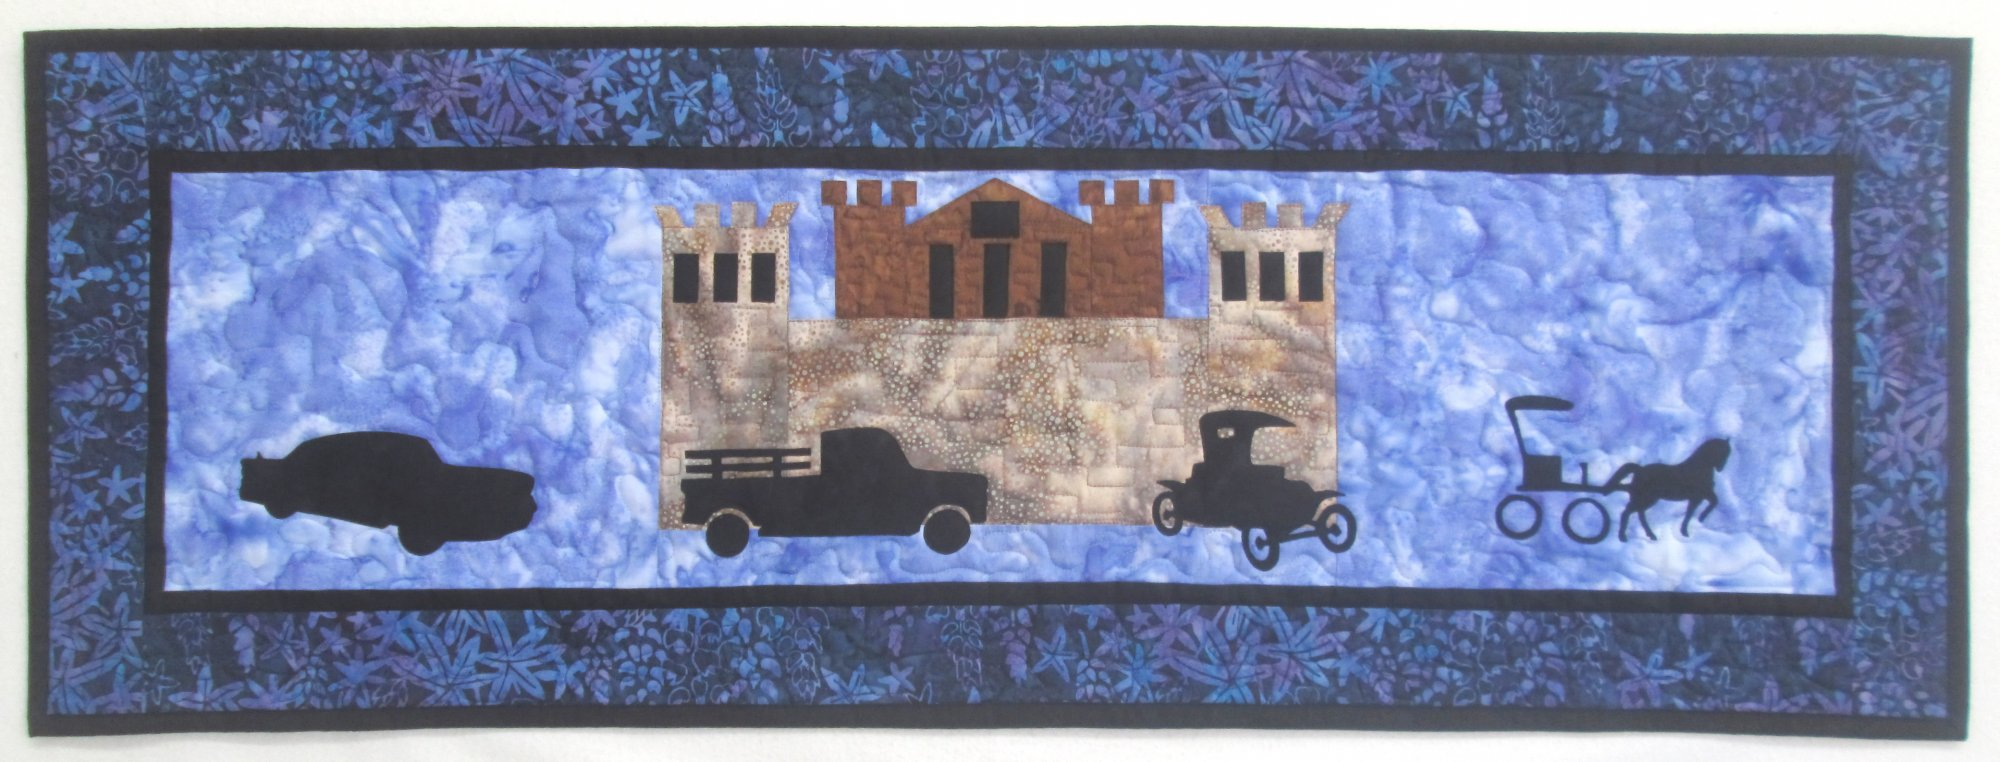 2017 Row by Row On the Go In Deer Lodge MT Wall Hanging Sample 15 x 42.5